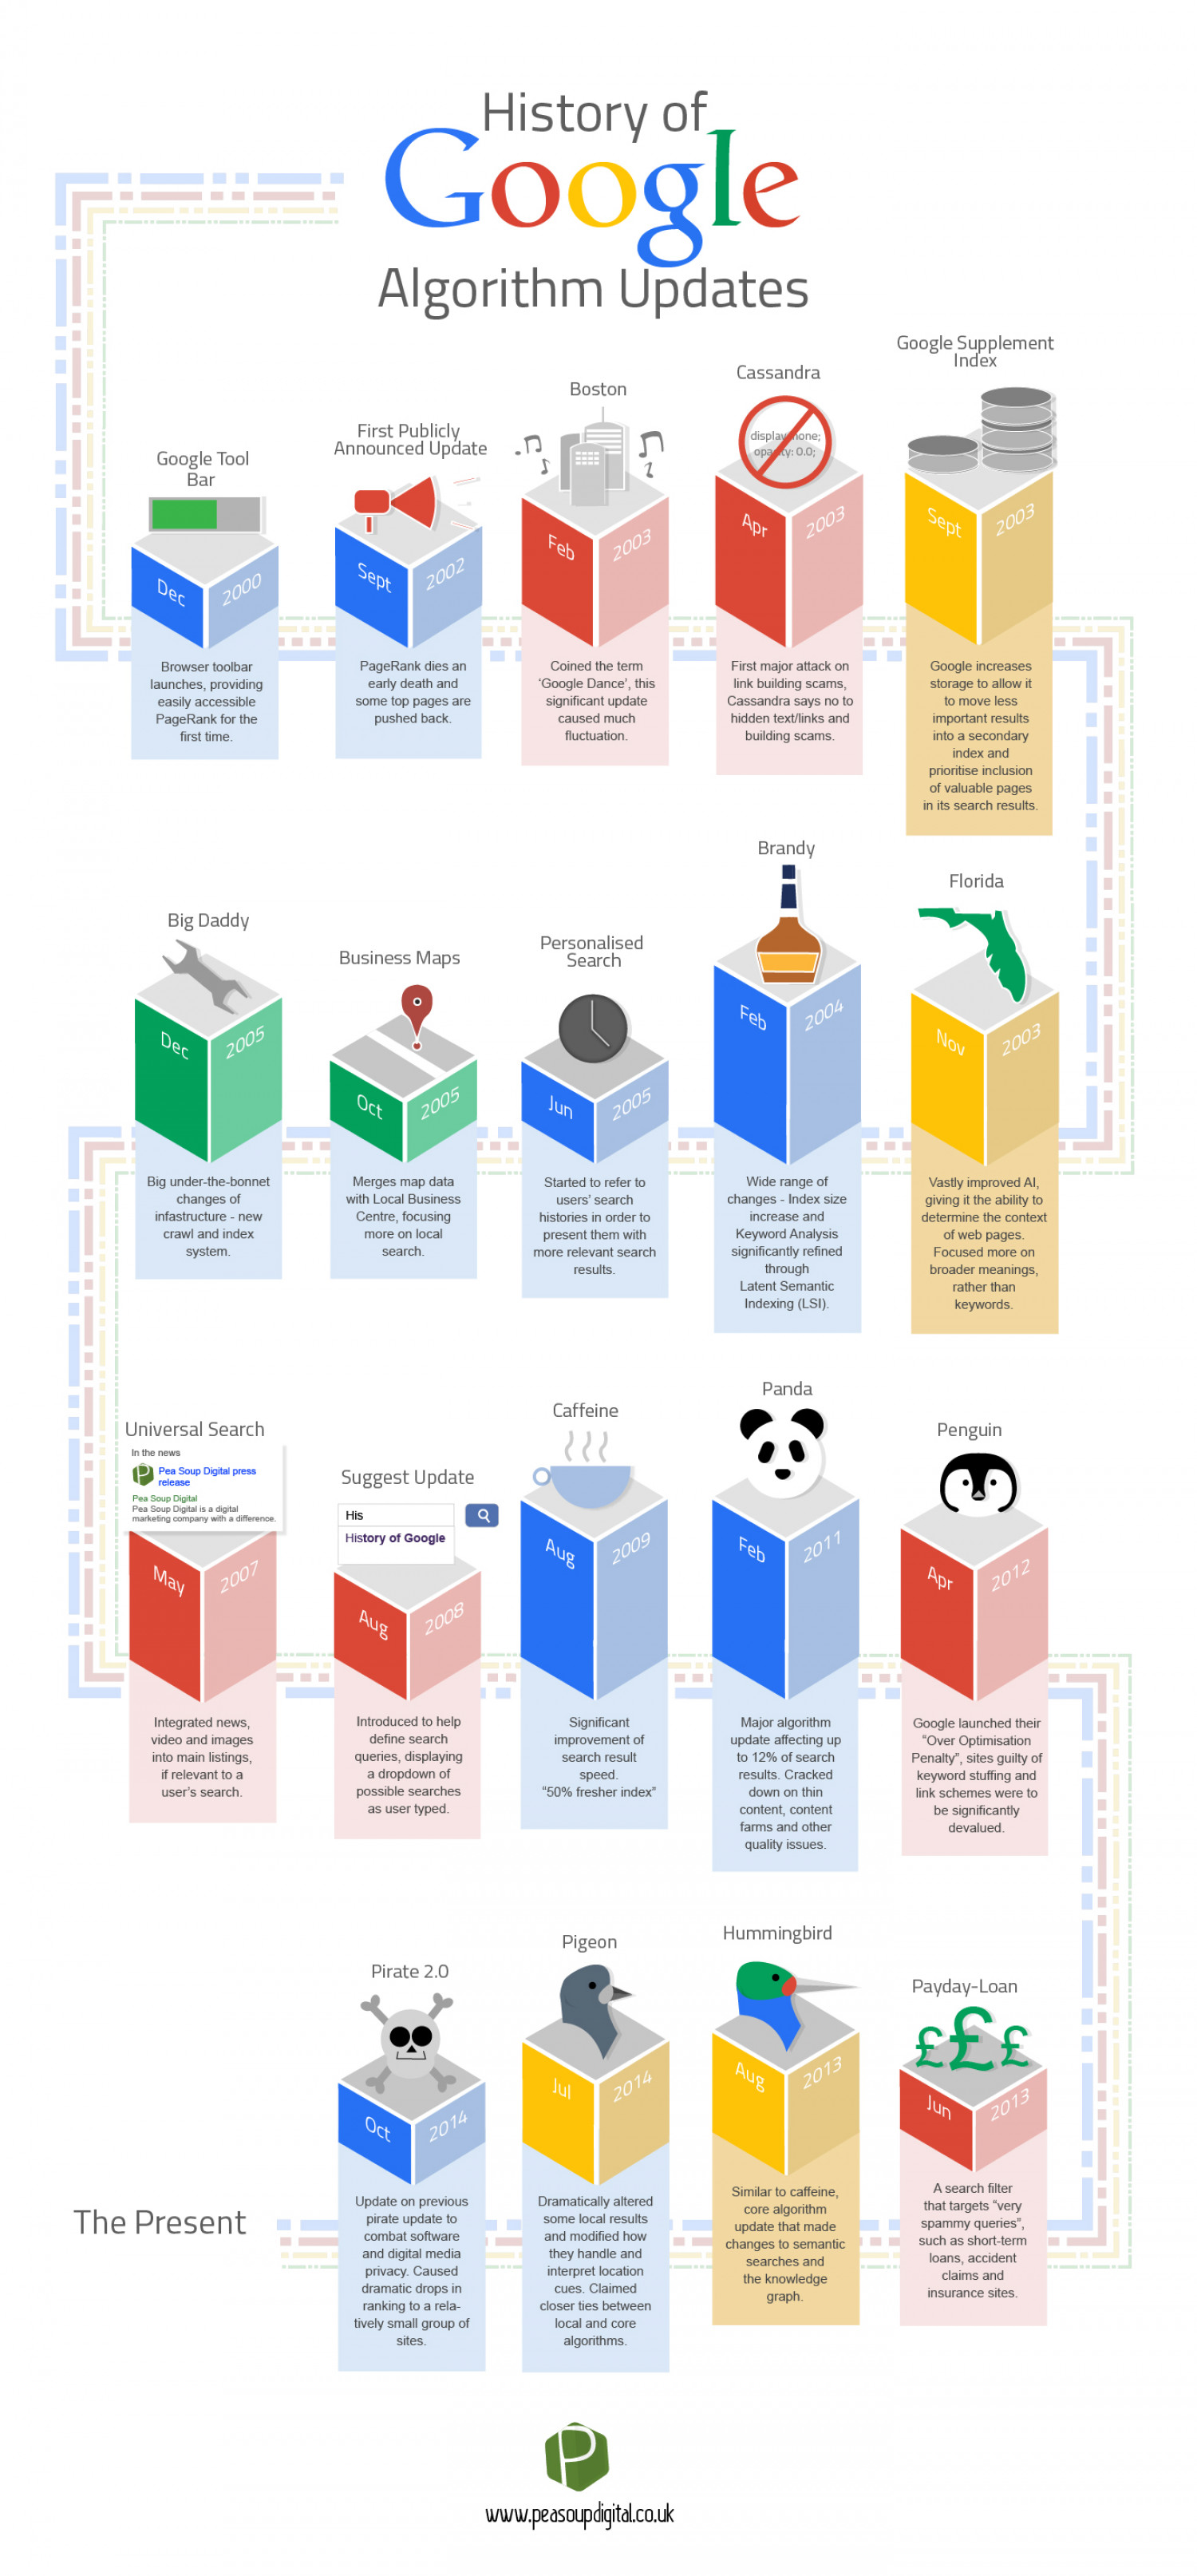 A History of Google Algorithm Updates Infographic